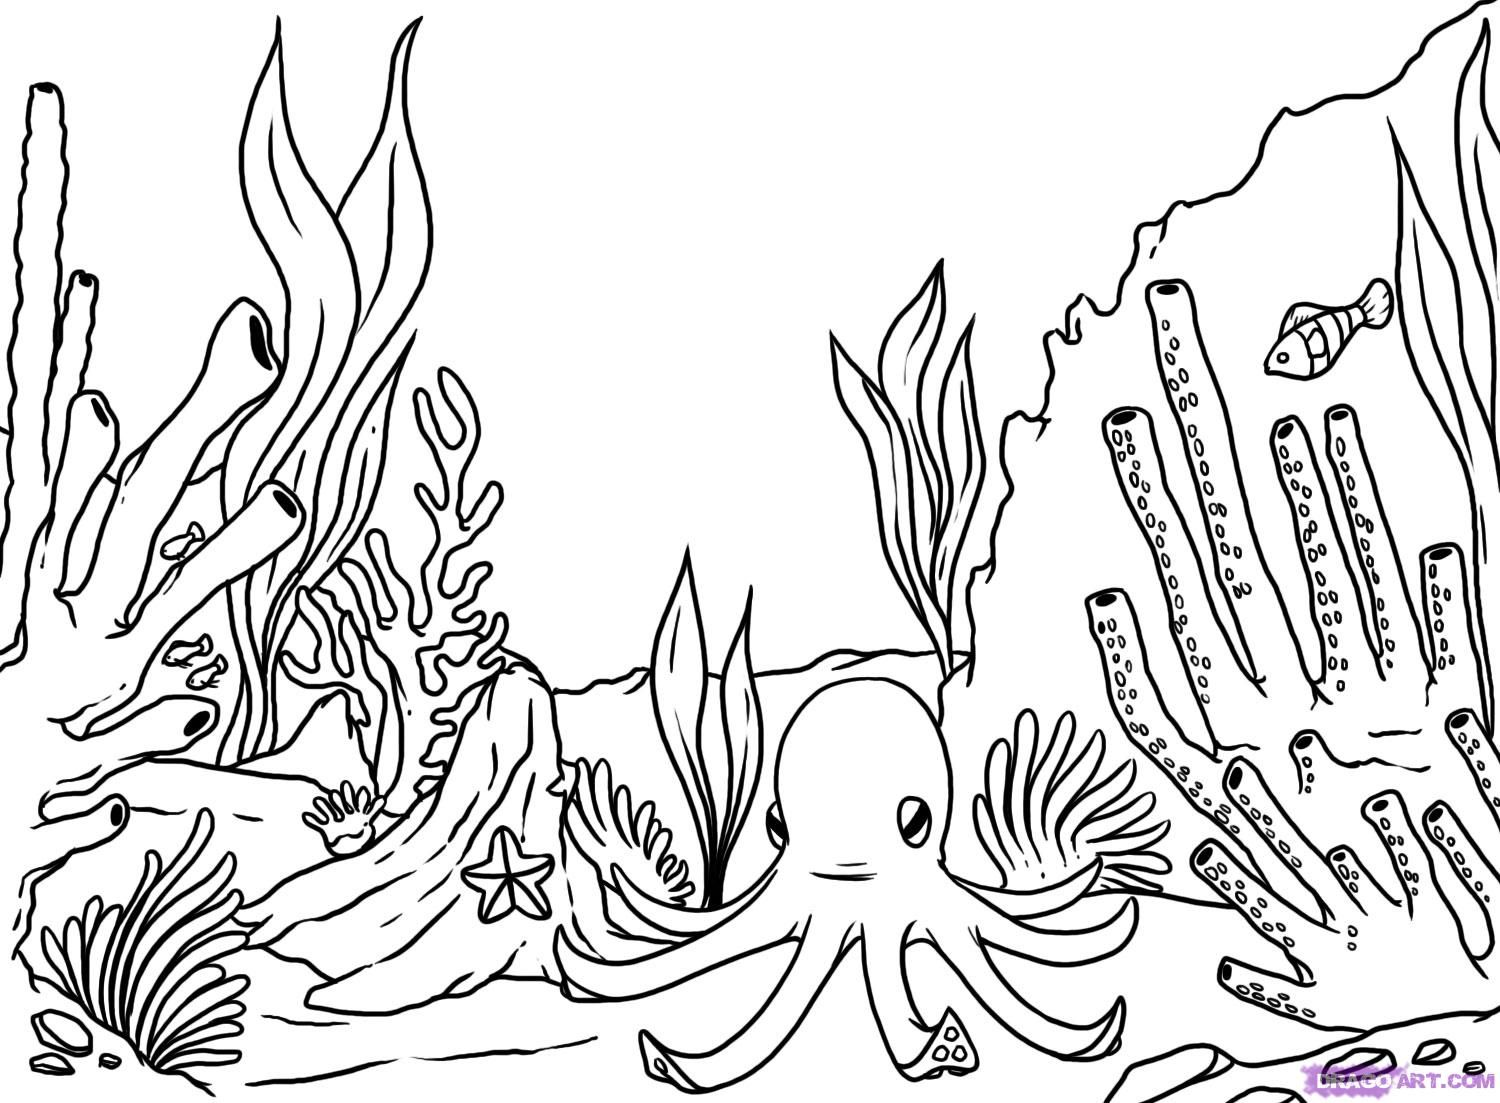 Adult Beauty Coral Coloring Page Images cute coral reefs coloring pages and on pinterest gallery images